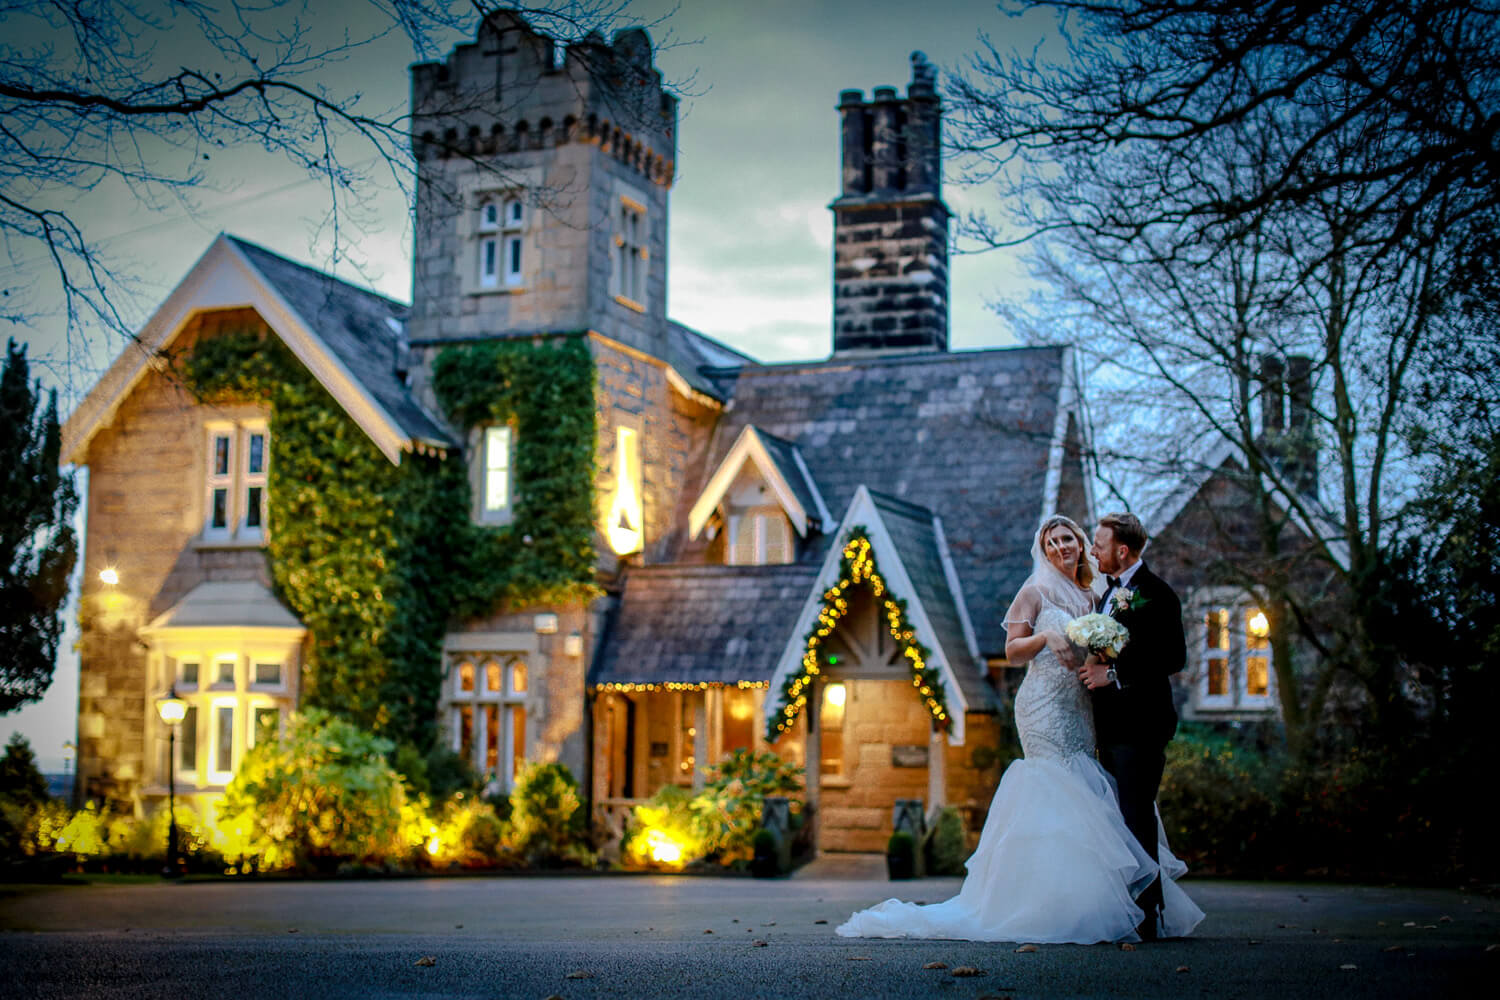 Bride and groom in front of West Tower at night